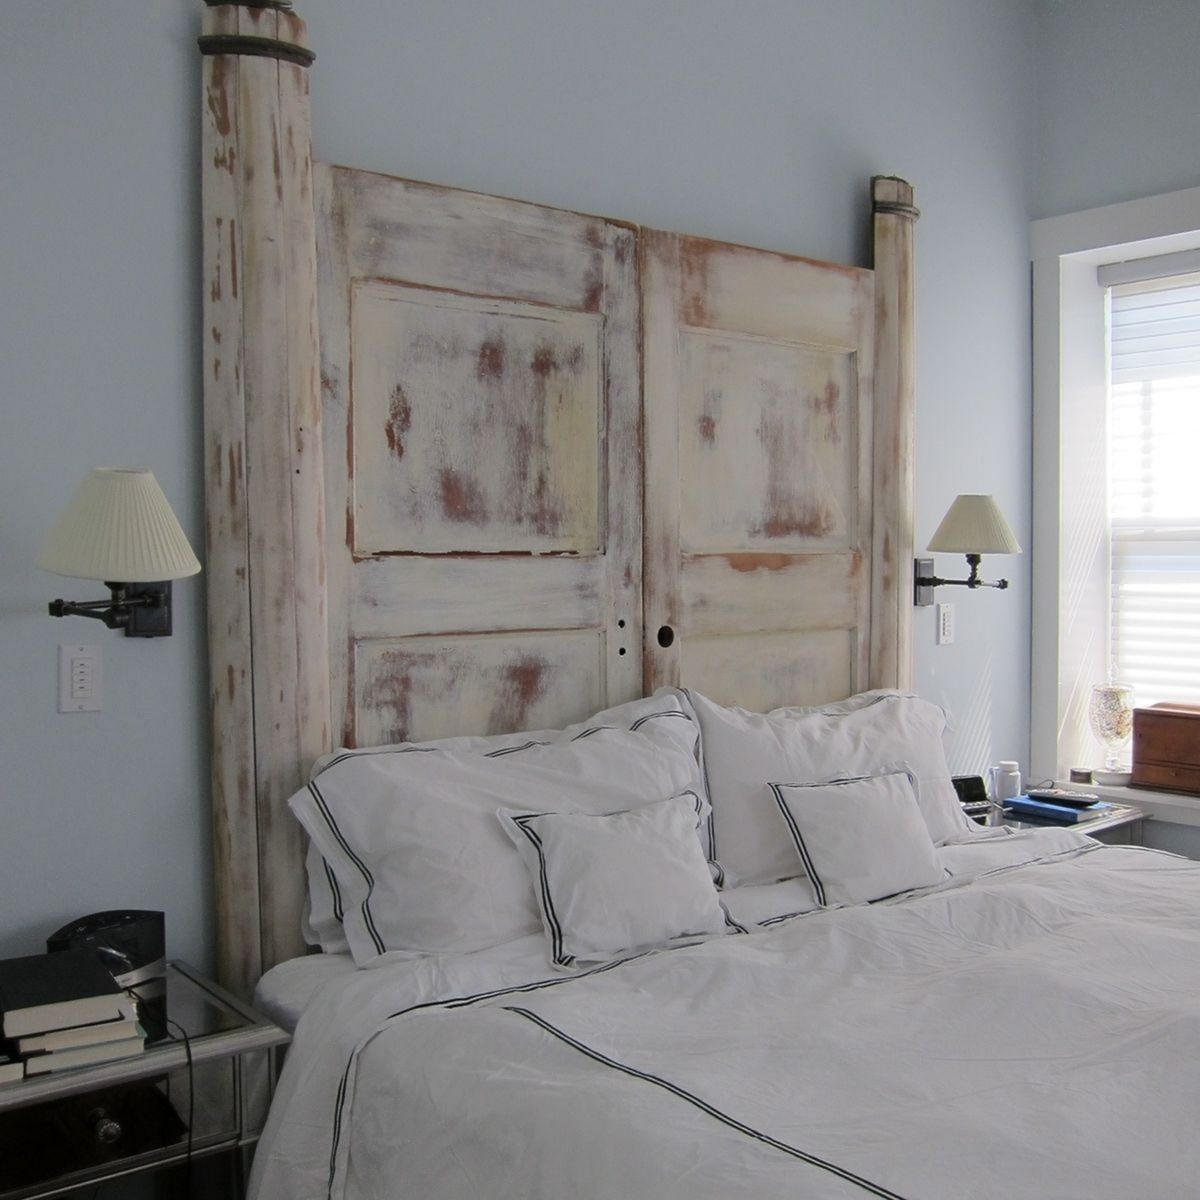 Amazing Headboard Design Ideas For Beds That Look Great13